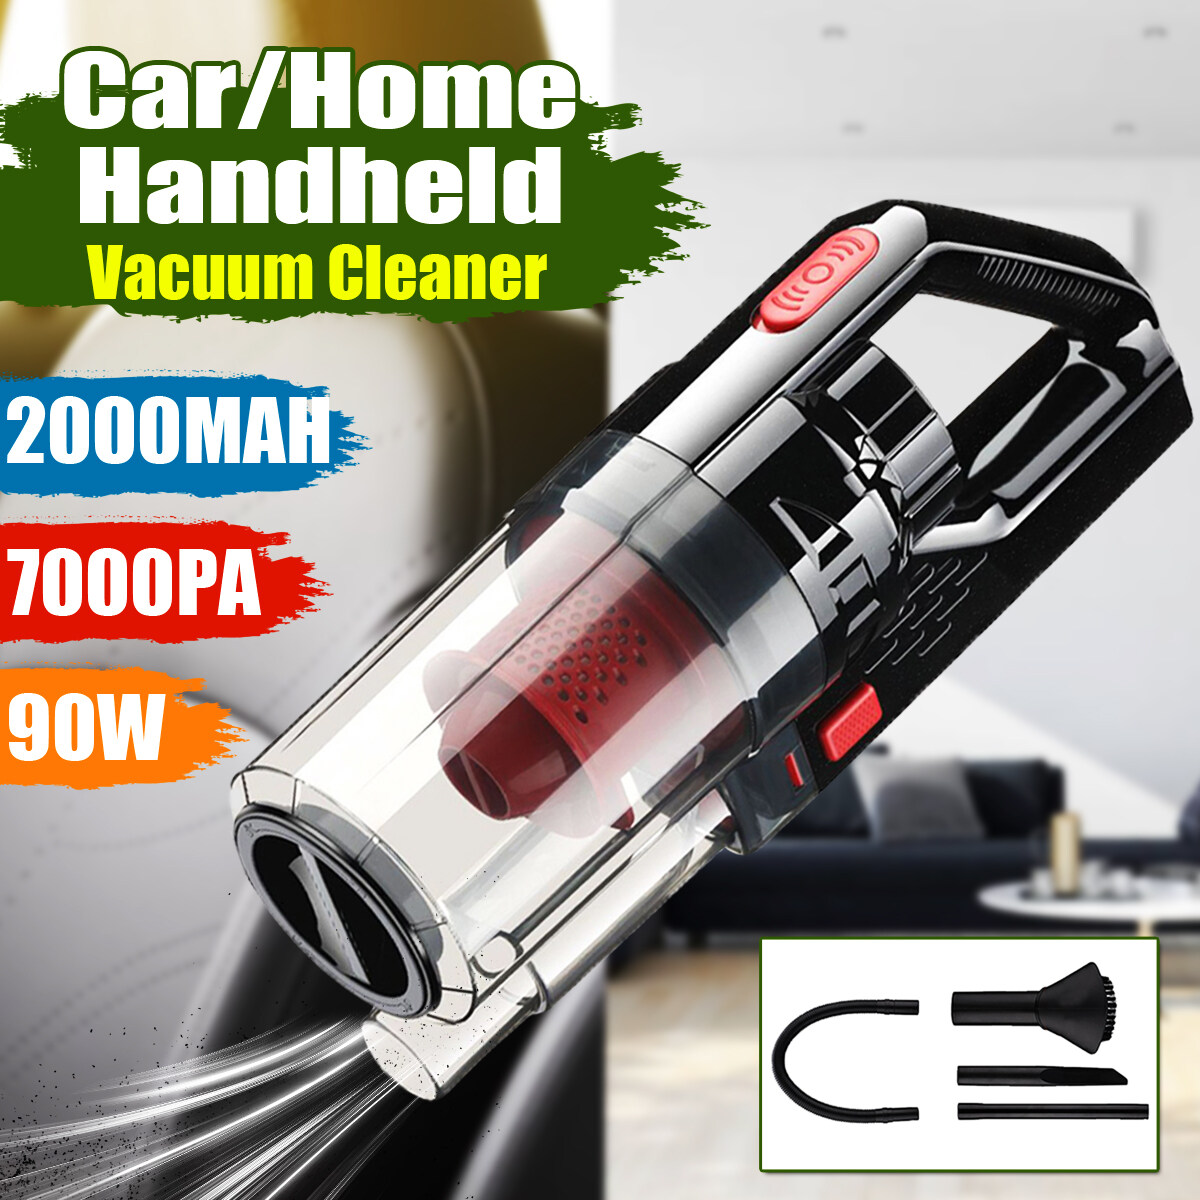 100W 8.4V Wireless Car Home Vacuum Portable Wet & Dry 7000PA Handheld Cordless Vacuum Cleaner for Car Strong Power Suction Vacuums Set